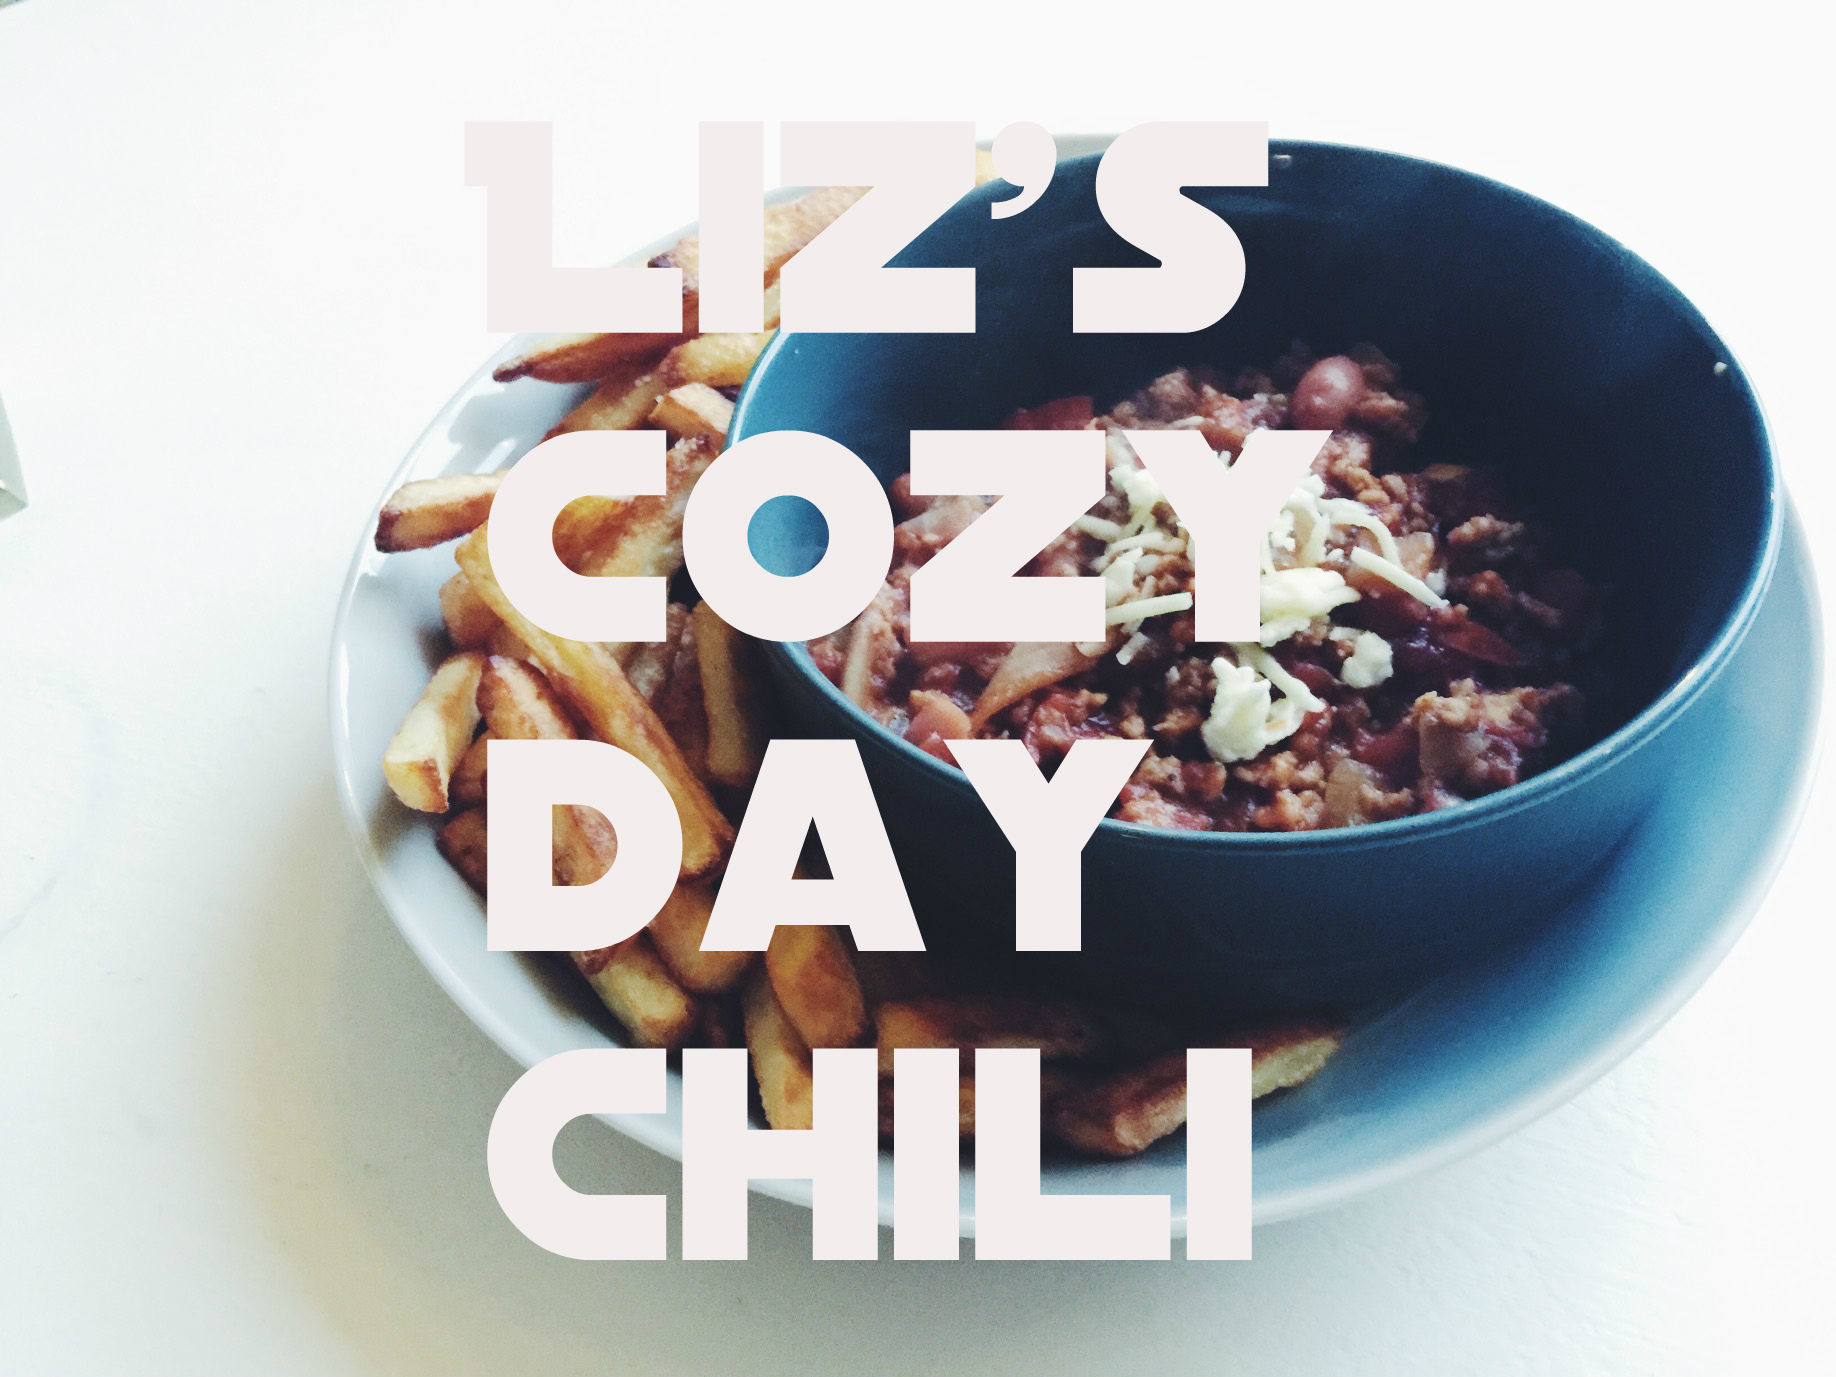 liz's cozy day chili